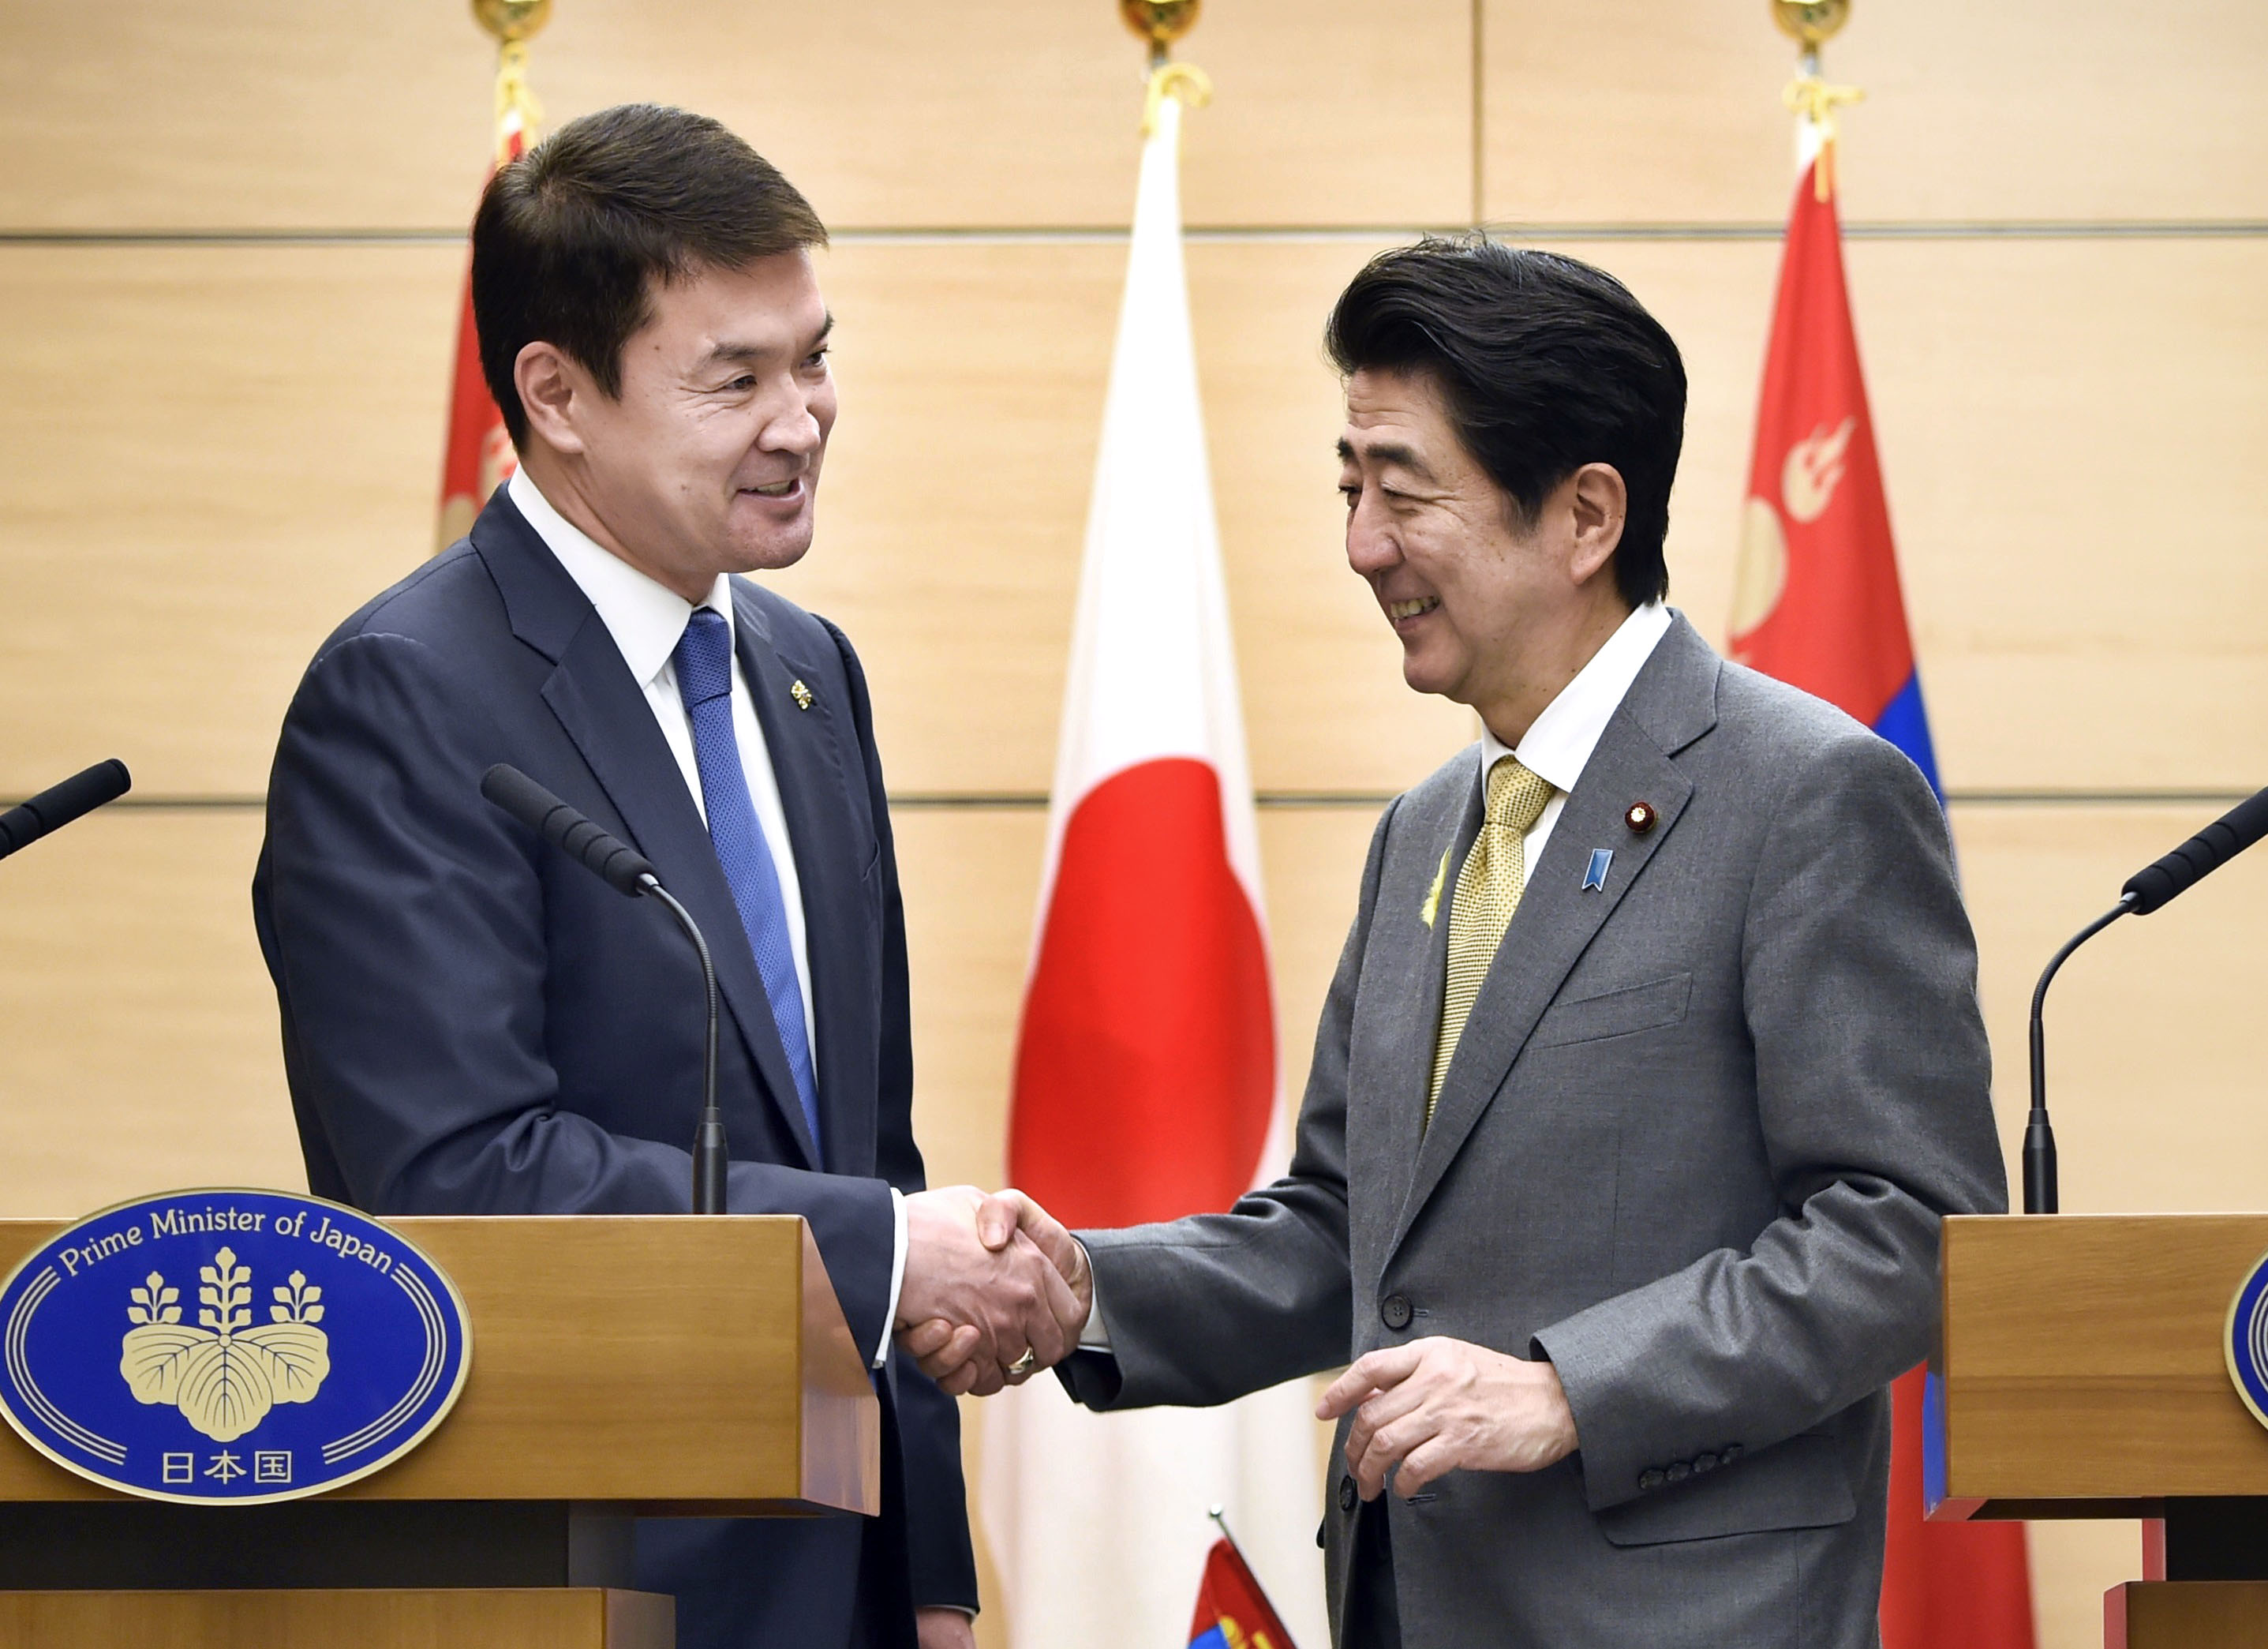 Prime Minister Shinzo Abe and Mongolian Prime Minister shake hands Tuesday at the prime minister's office in Tokyo following a news conference in which they announced the signing of a bilateral economic partnership.   KYODO